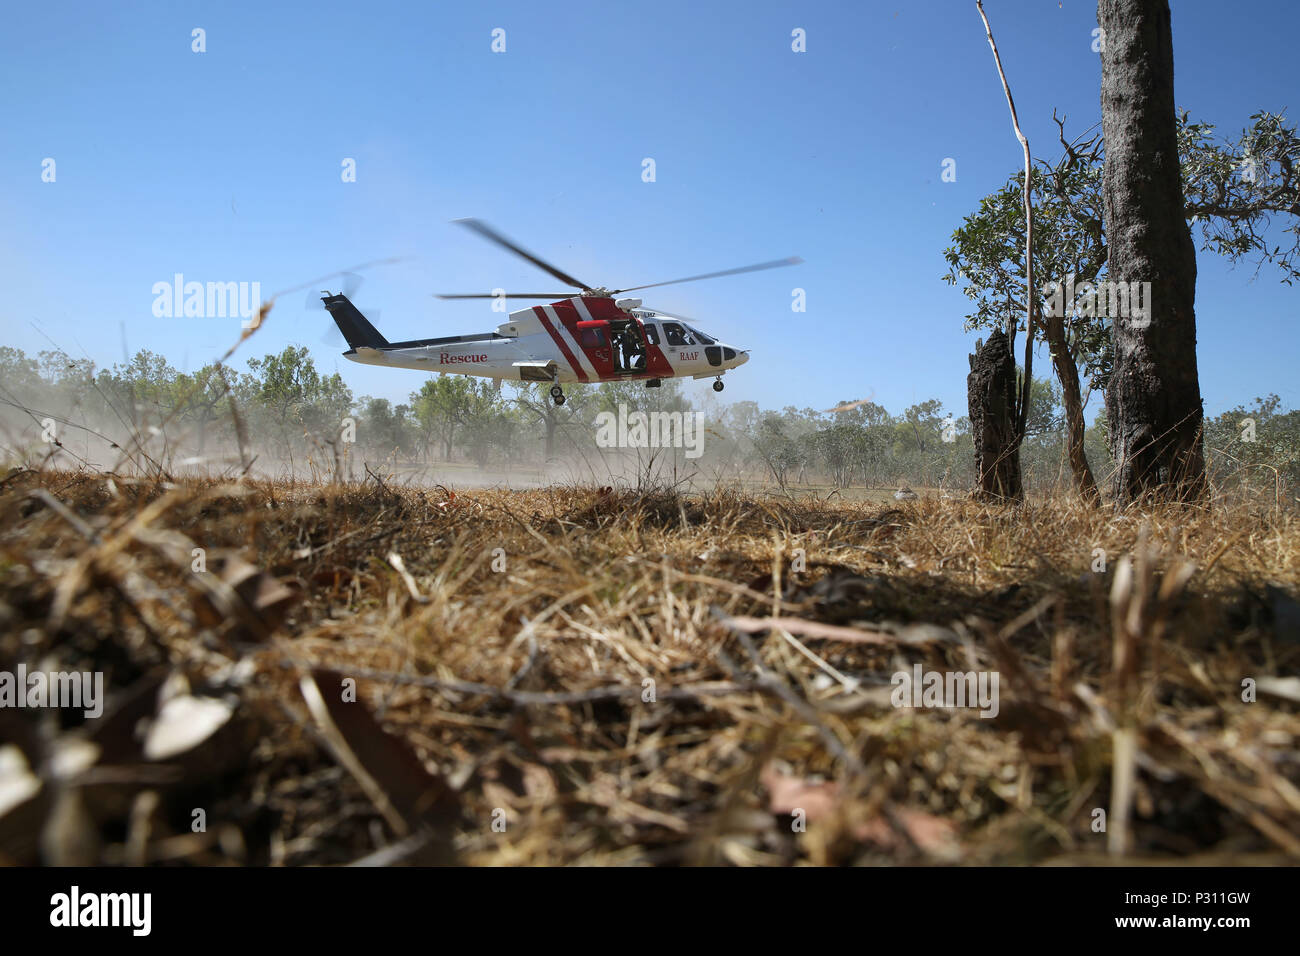 A Sikorsky S76A++ Search and Rescue helicopter hovers during SAR training at Exercise Pitch Black 2016, Royal Australian Air Force Base Tindal, Australia, Aug. 16, 2016. The SAR team trains with local and international forces during exercises like Pitch Black to ensure all medical personnel that can respond to an aircraft emergency are capable of carrying out the same procedures. The biennial, multinational exercise involves approximately 10 allied nations and prepares these forces for possible real-world scenarios. The bilateral effort amongst Exercise Pitch Black 2016 furthermore showcases t - Stock Image